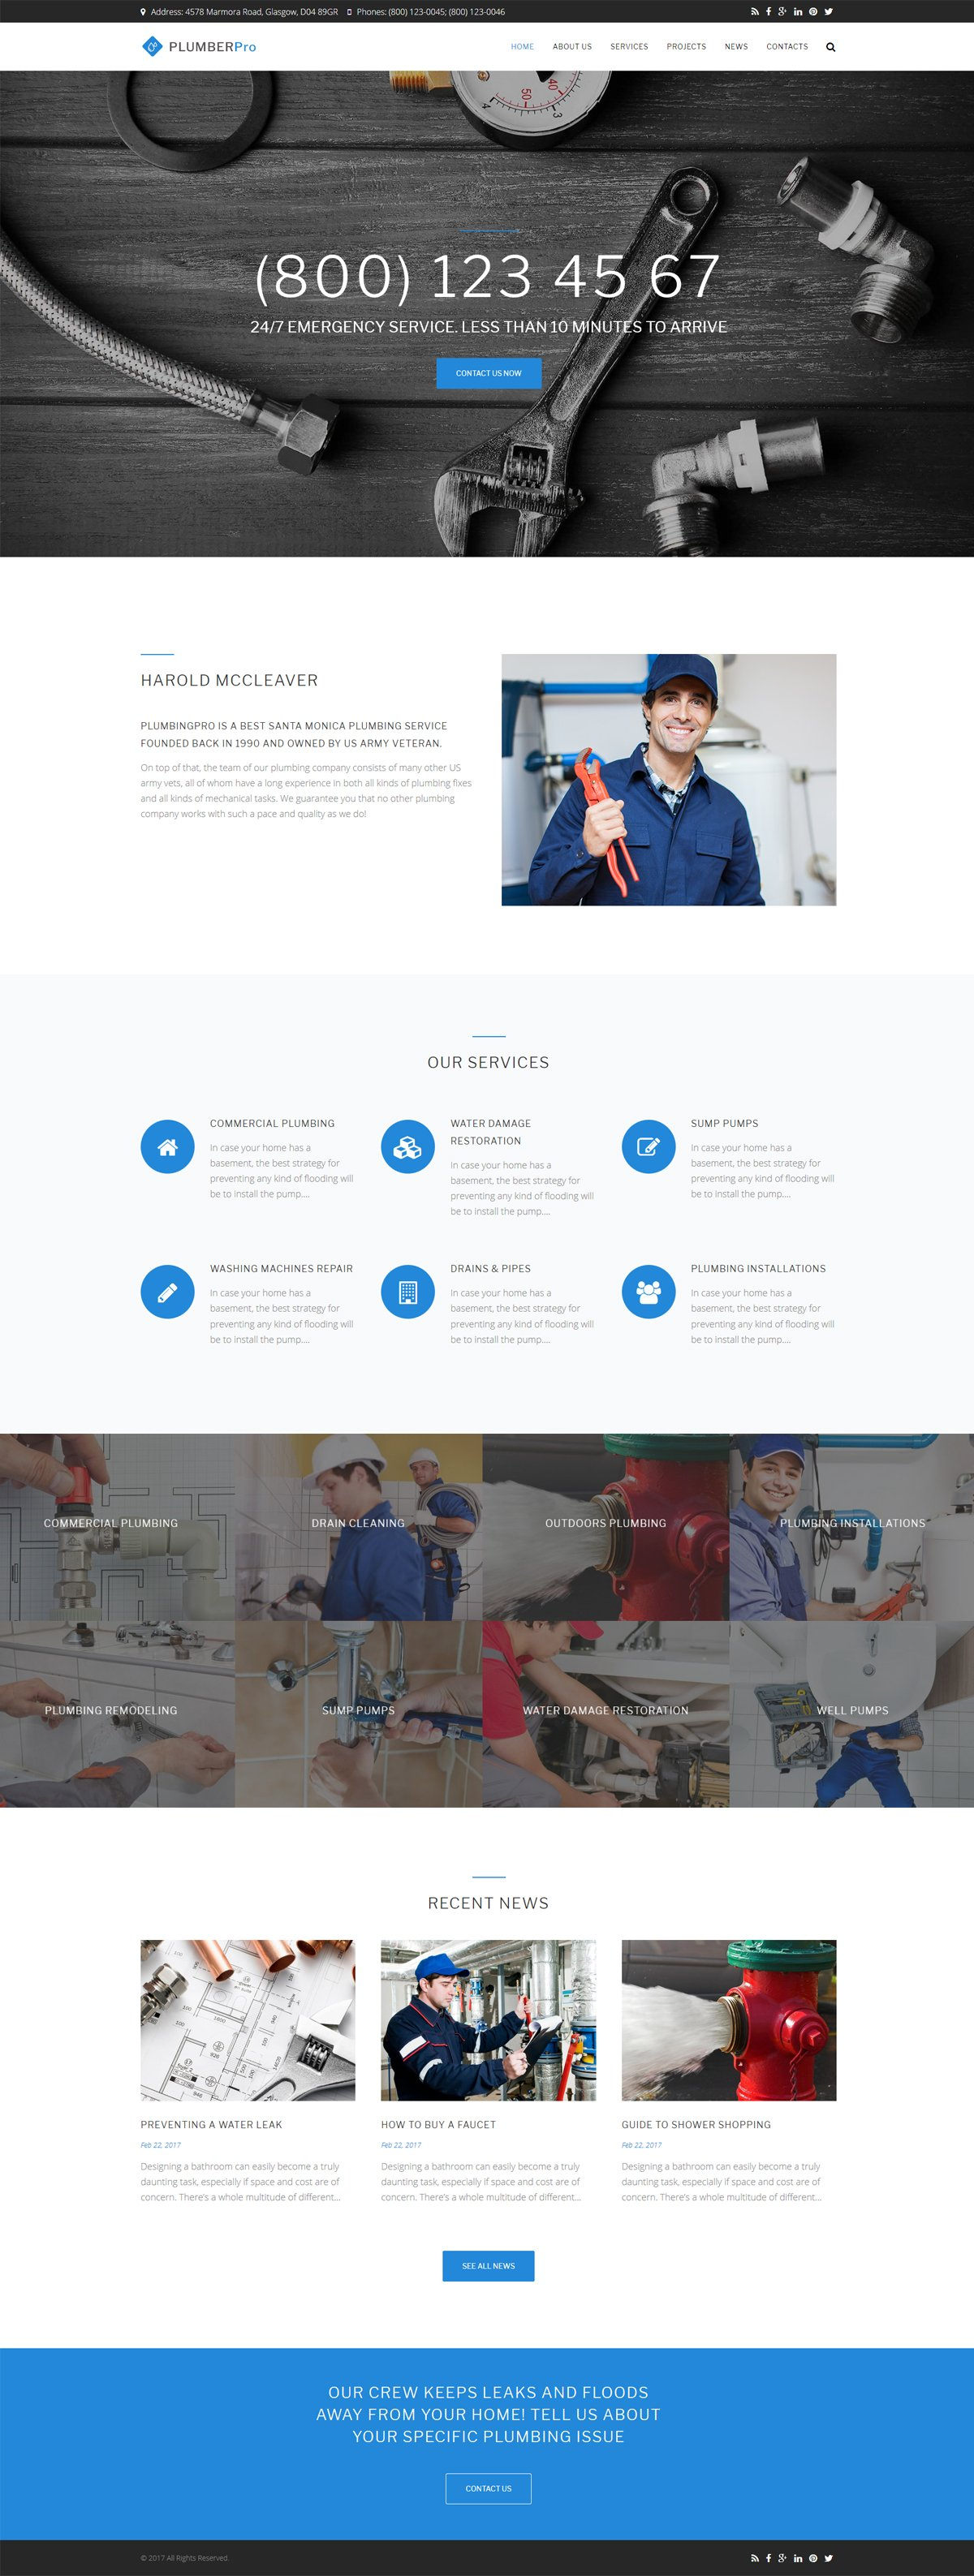 Website Design Template 62503 - air conditioning constructions service plumber handyman house repair maintenance